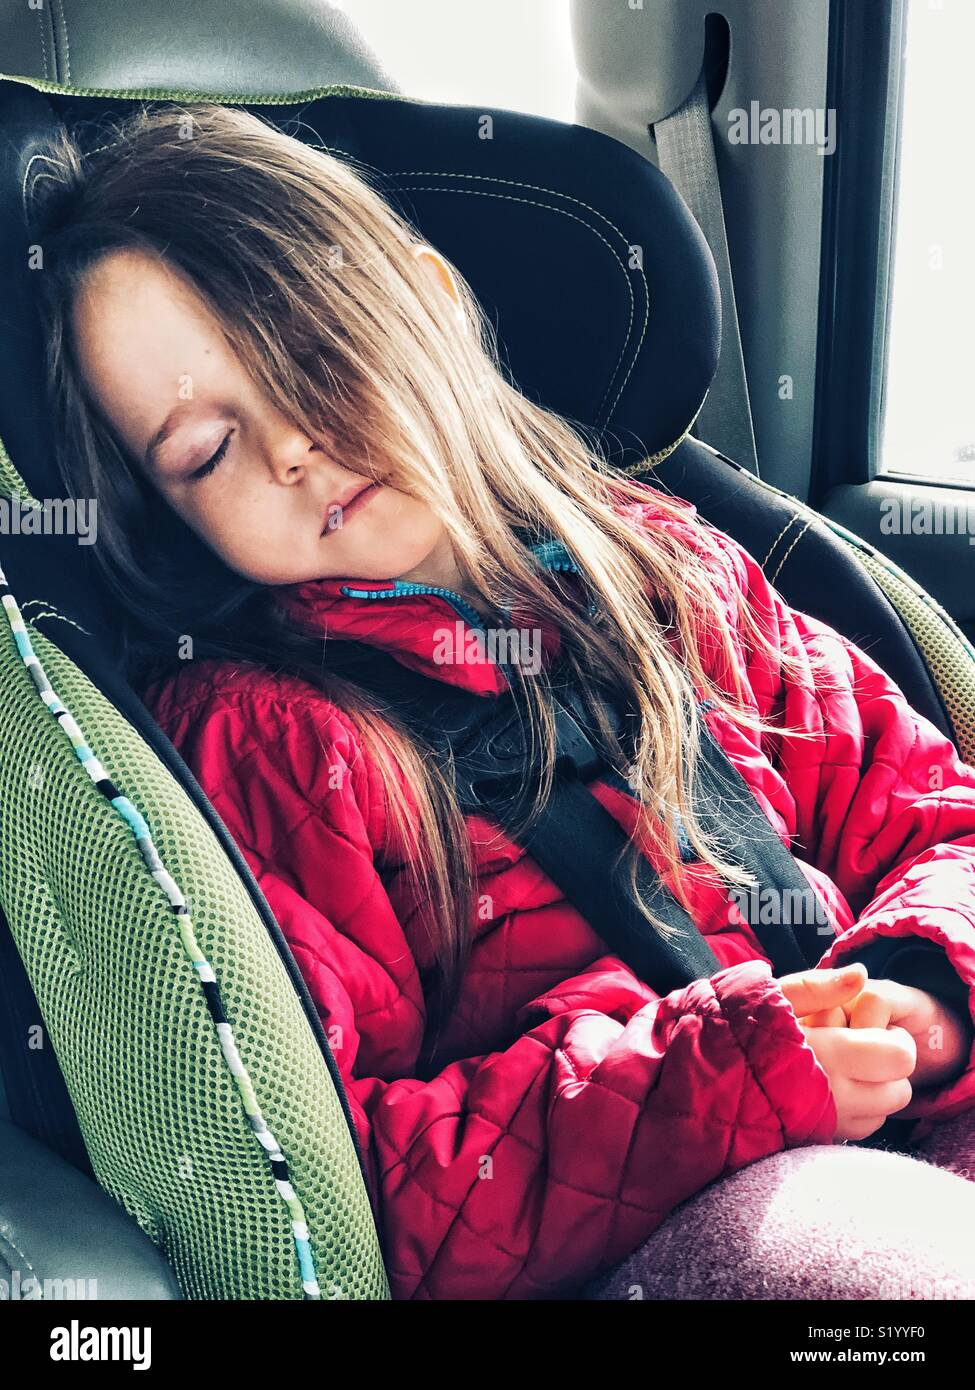 5 Year Old Girl Sleeping In Forward Facing Car Seat With Point Harness And Long Hair Covering Half Her Face